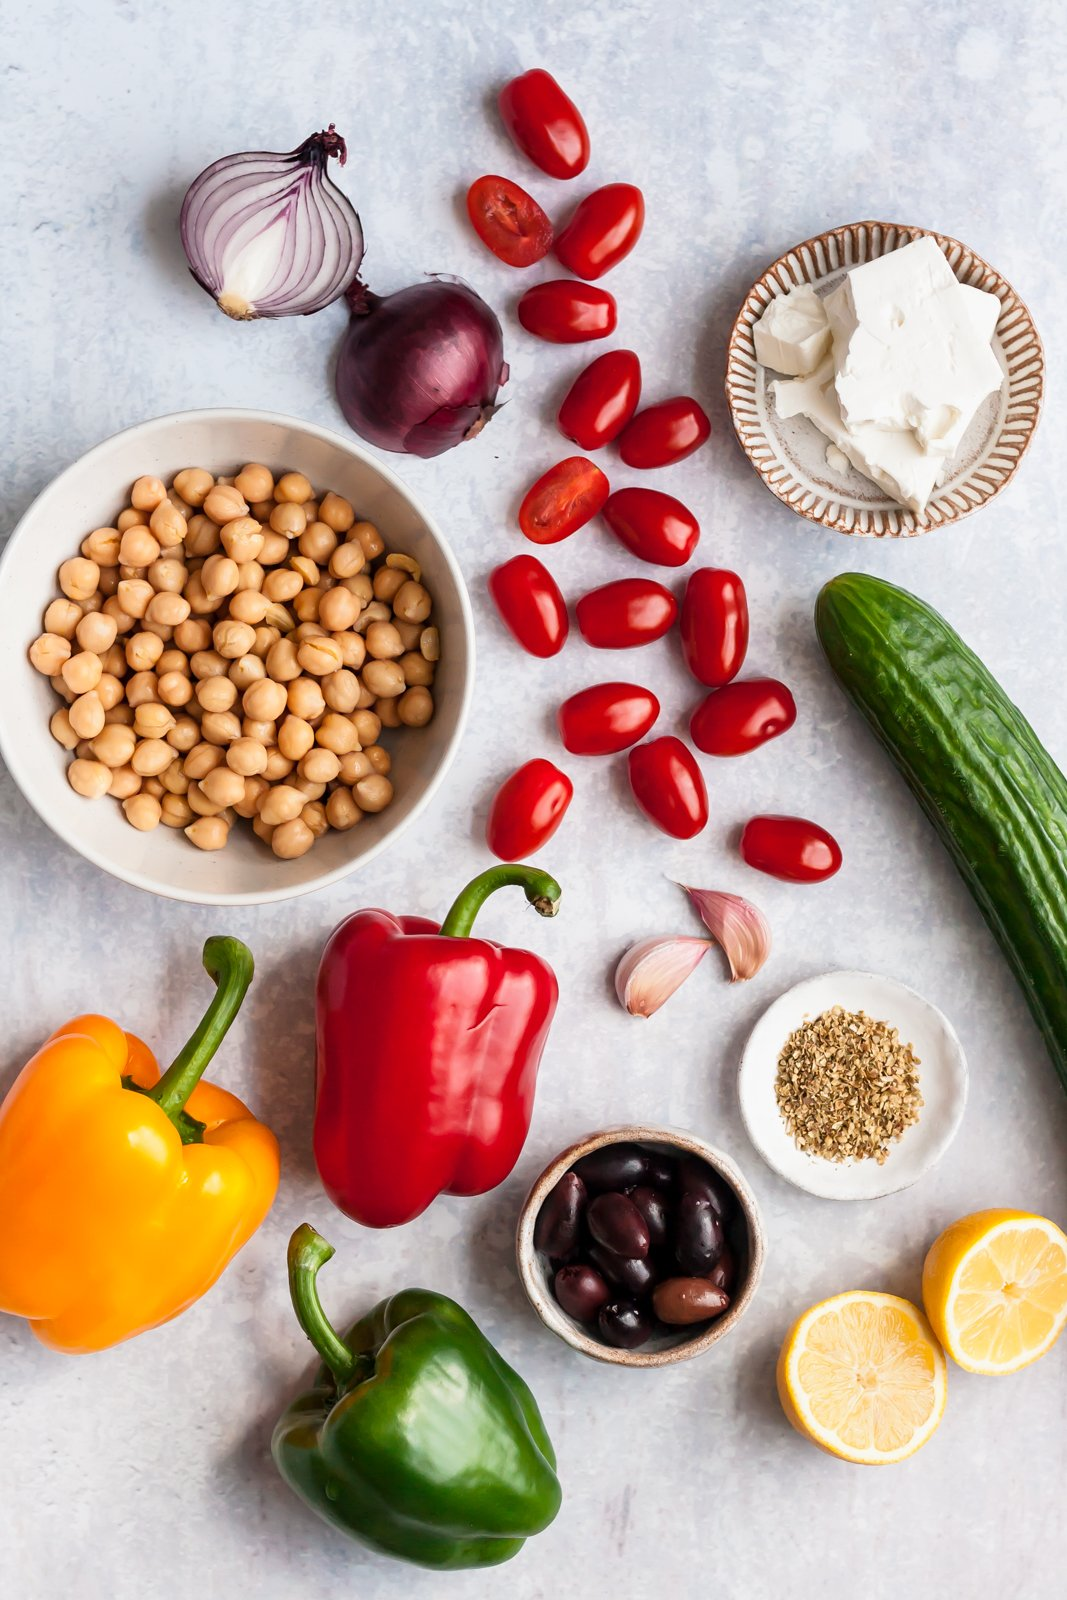 ingredients for greek chickpea salad on a grey surface